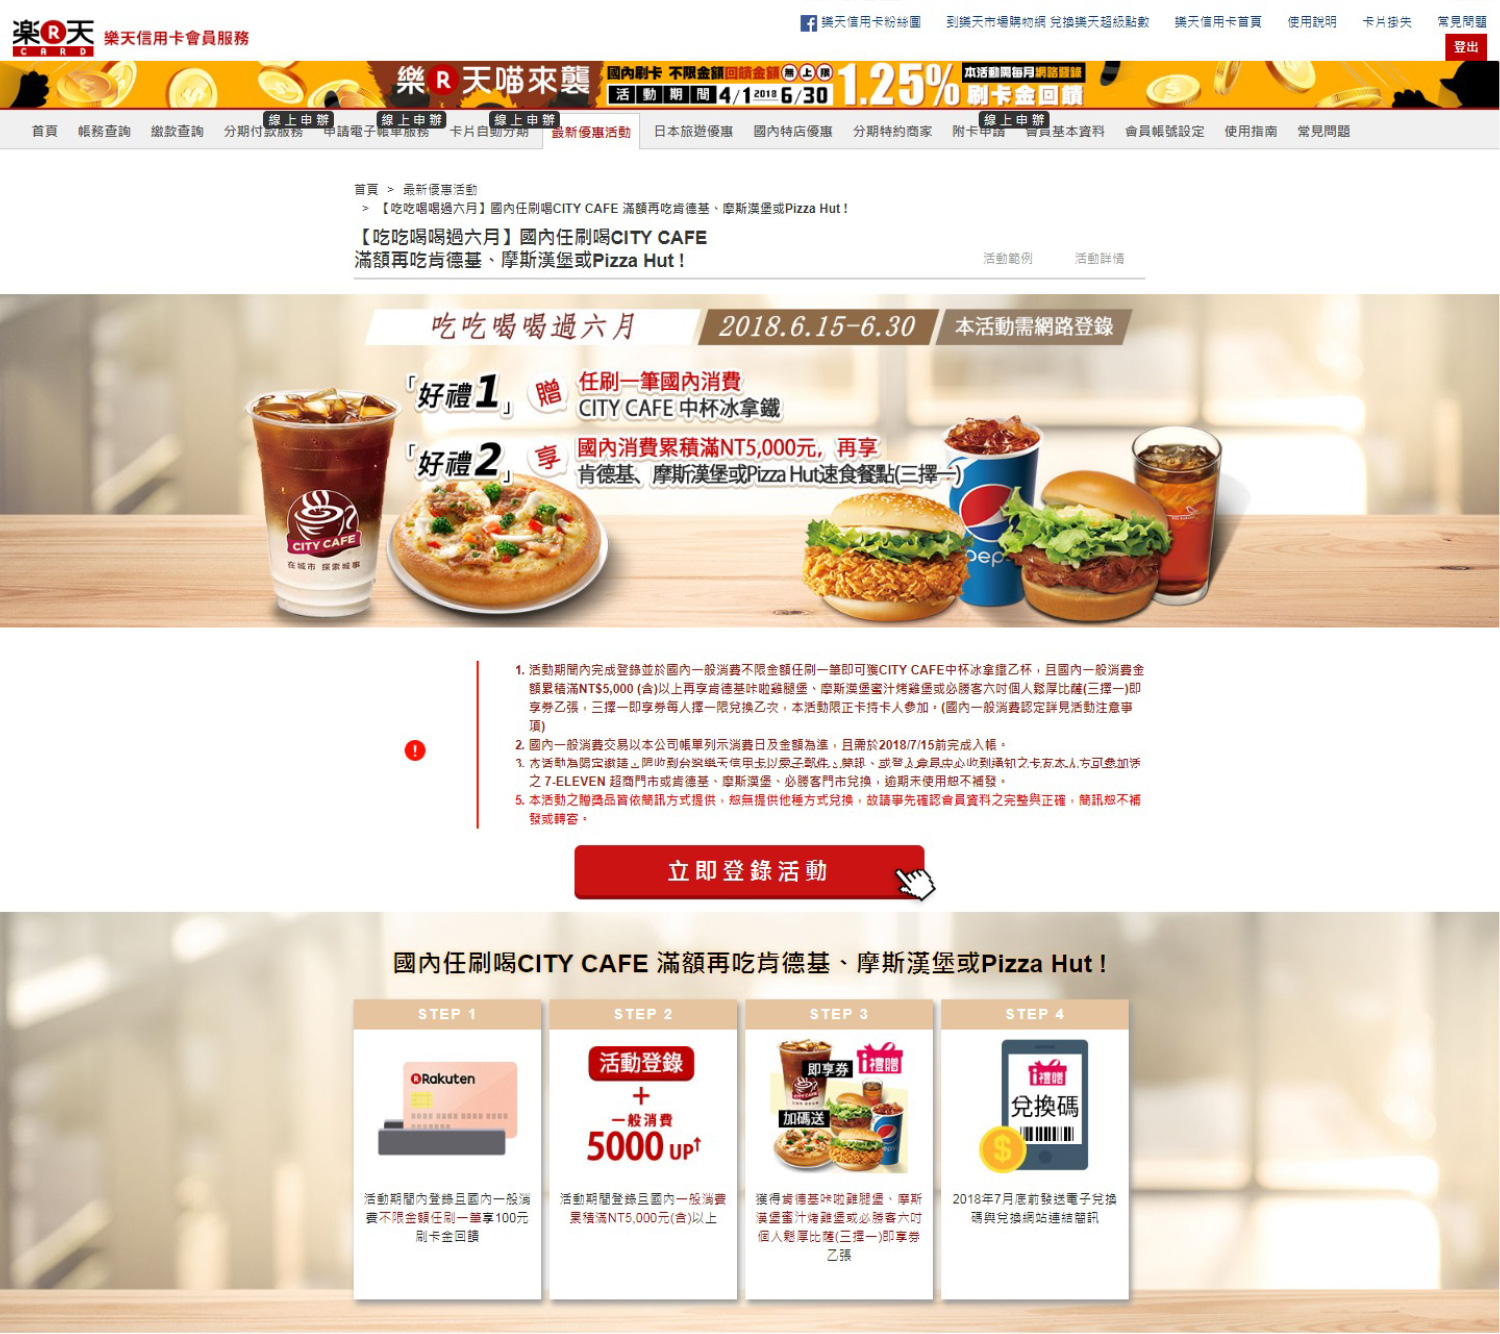 Self-select e-vouchers—gifts to Rakuten credit card holders meeting minimum spending requirement